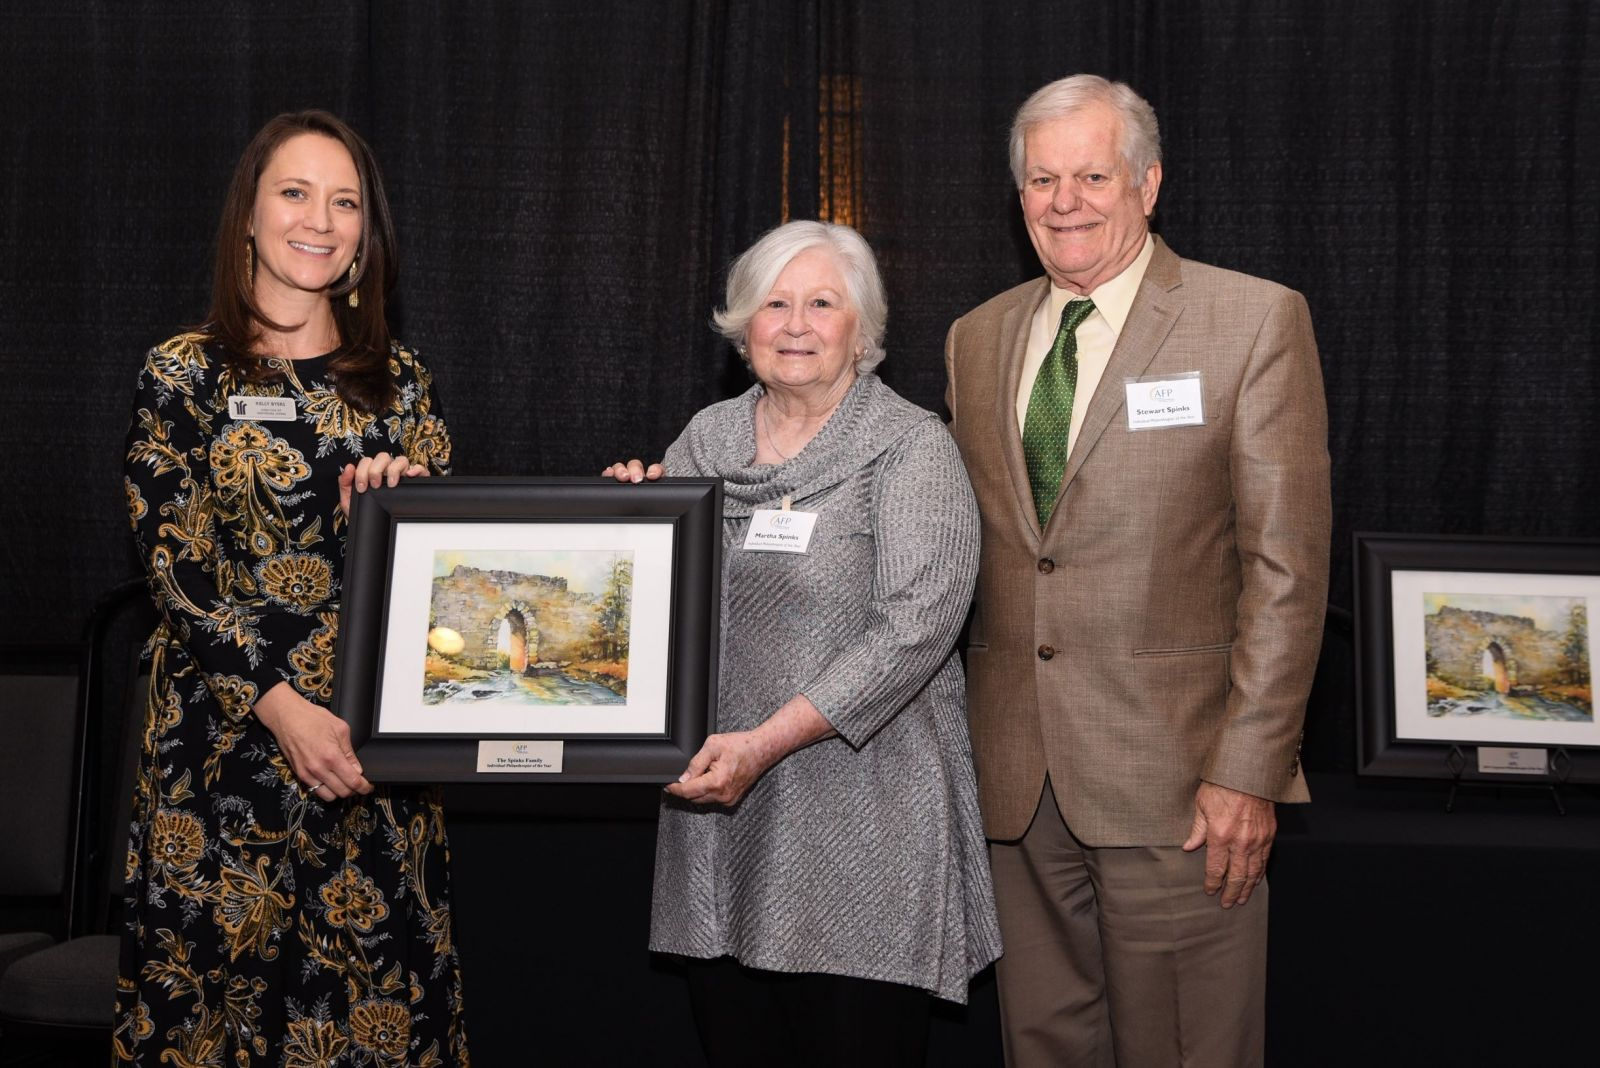 Martha and Stewart Spinks receive a rendering of the Poinsett Bridge in appreciation of their philanthropy.